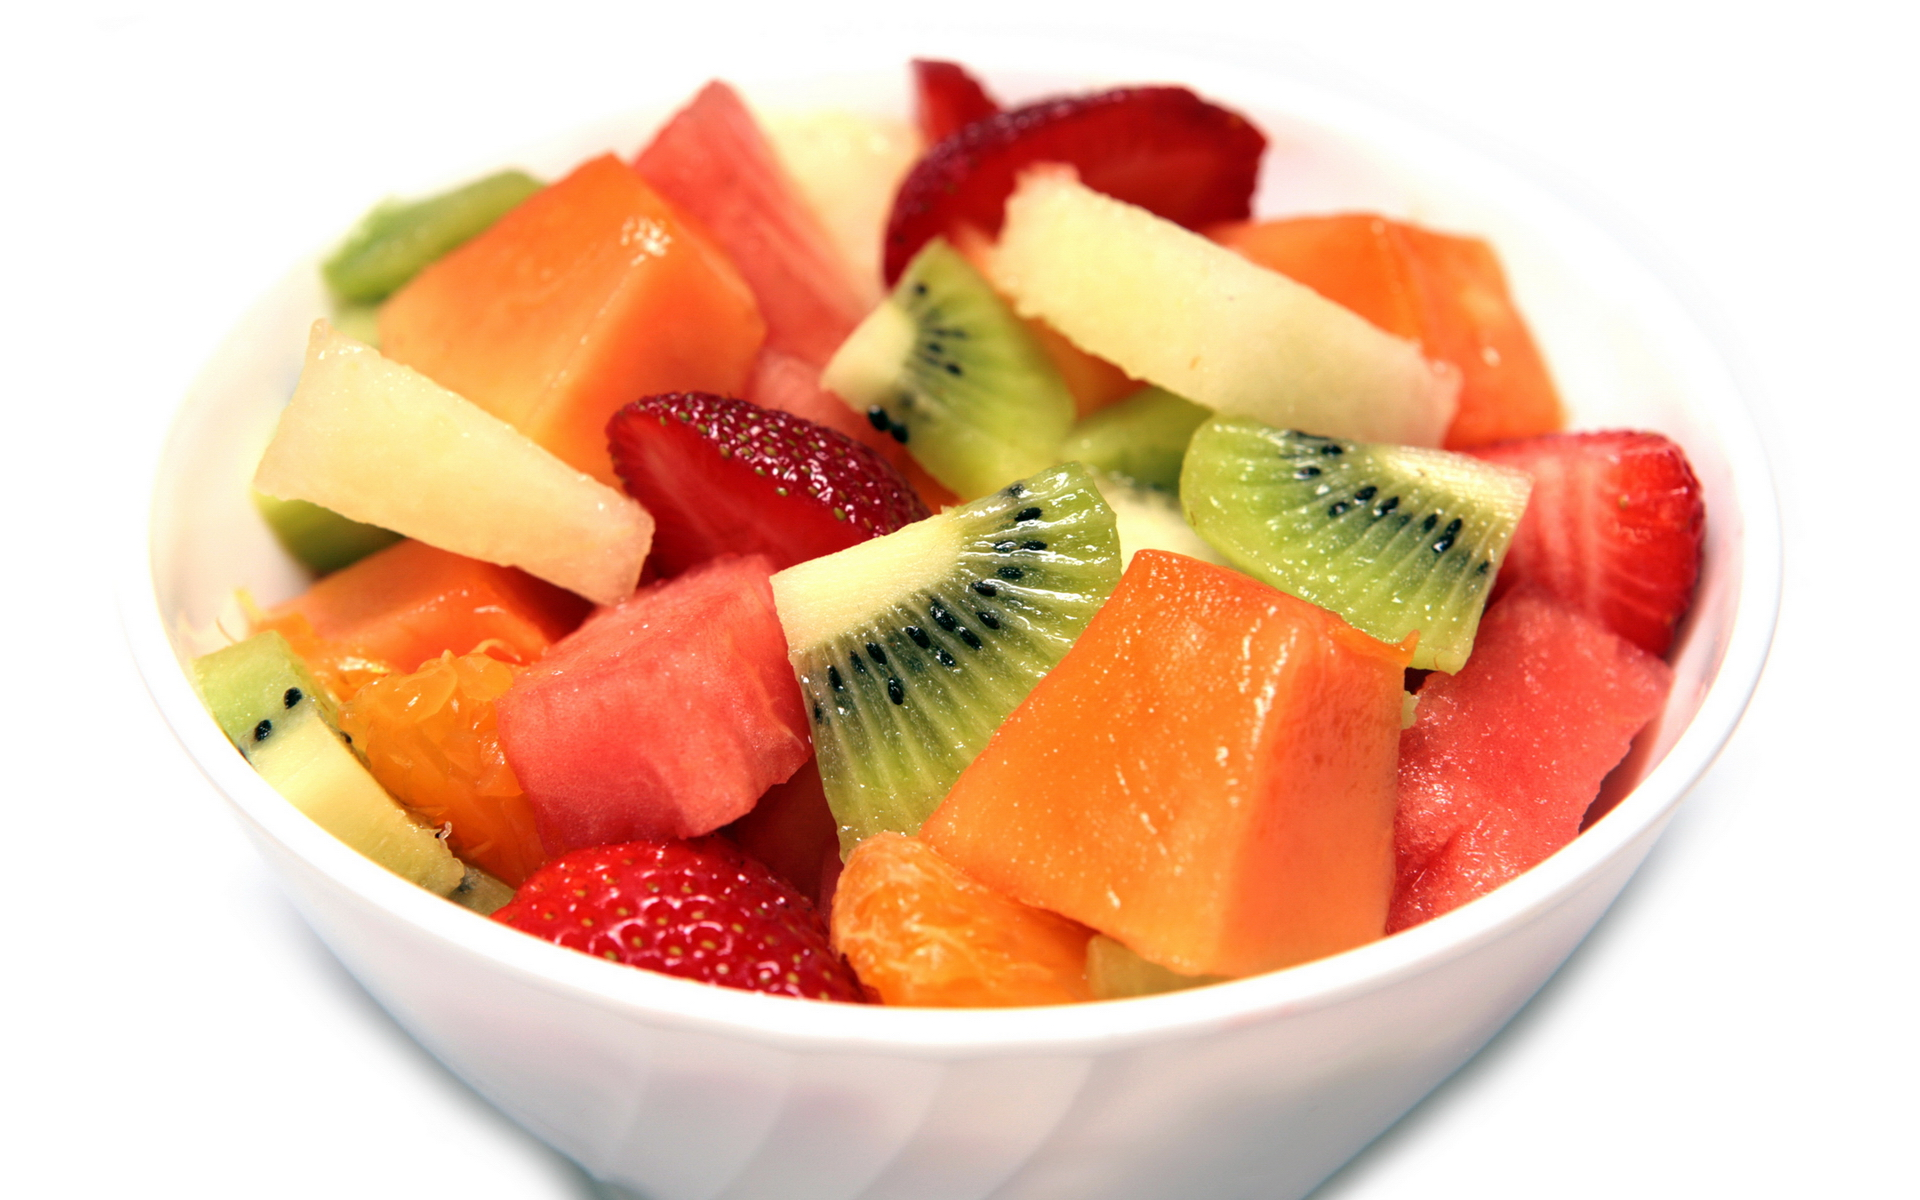 The Best Diabetic Fruit Salad Recipes on Yummly Honeyrum Fruit Salad Fresh Fruit Salad With Creamy Lime Topping Creamy Tropical Fruit Salad